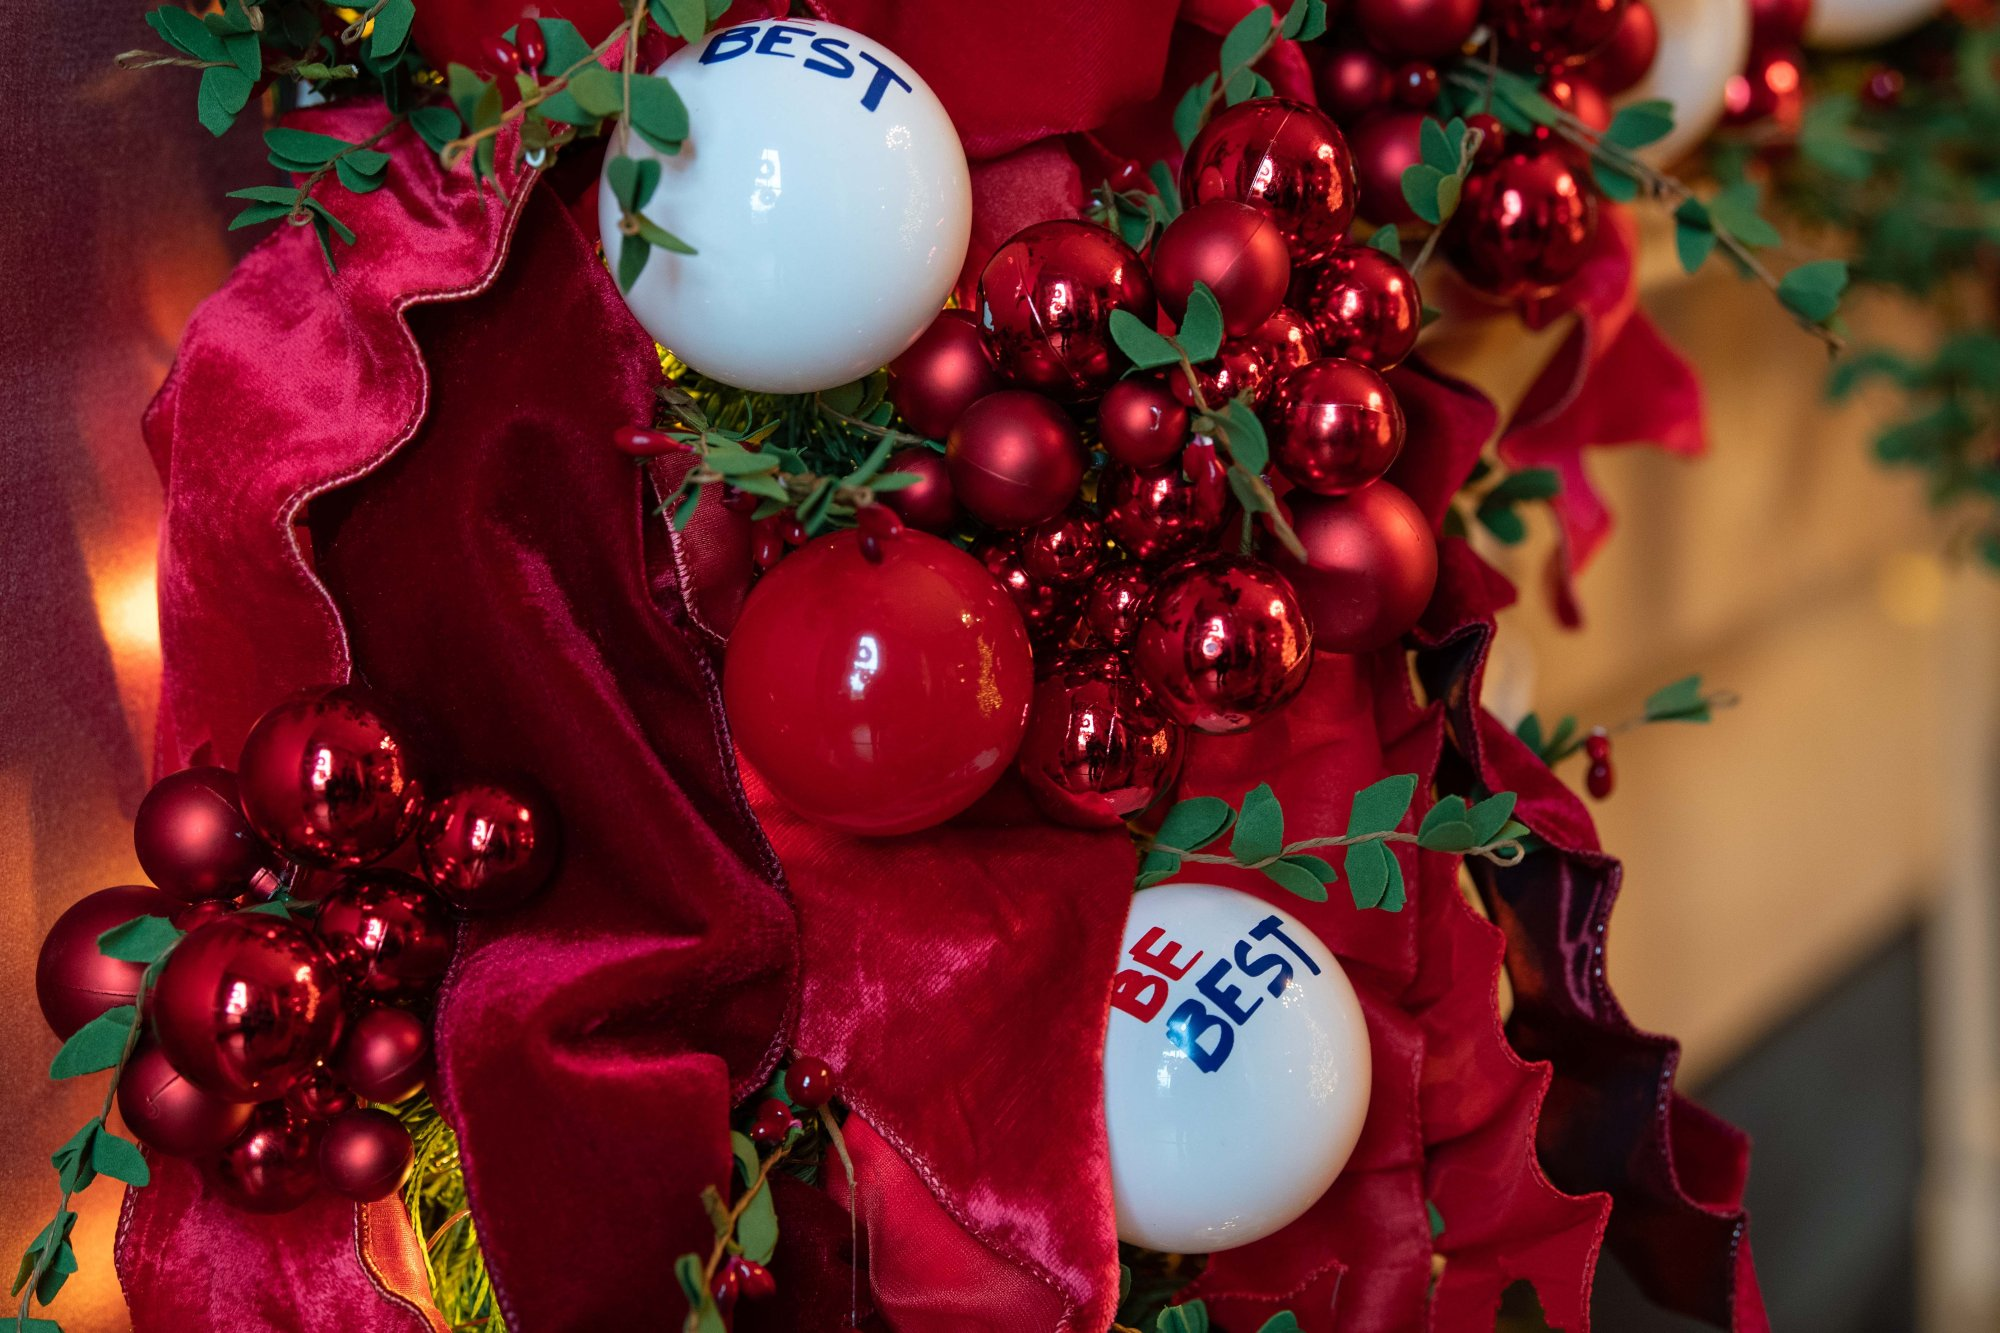 Christmas decorations are seen at the White House during a preview of the 2018 holiday decor in Washington, DC, on November 26, 2018. (Photo by NICHOLAS KAMM/AFP/Getty Images)